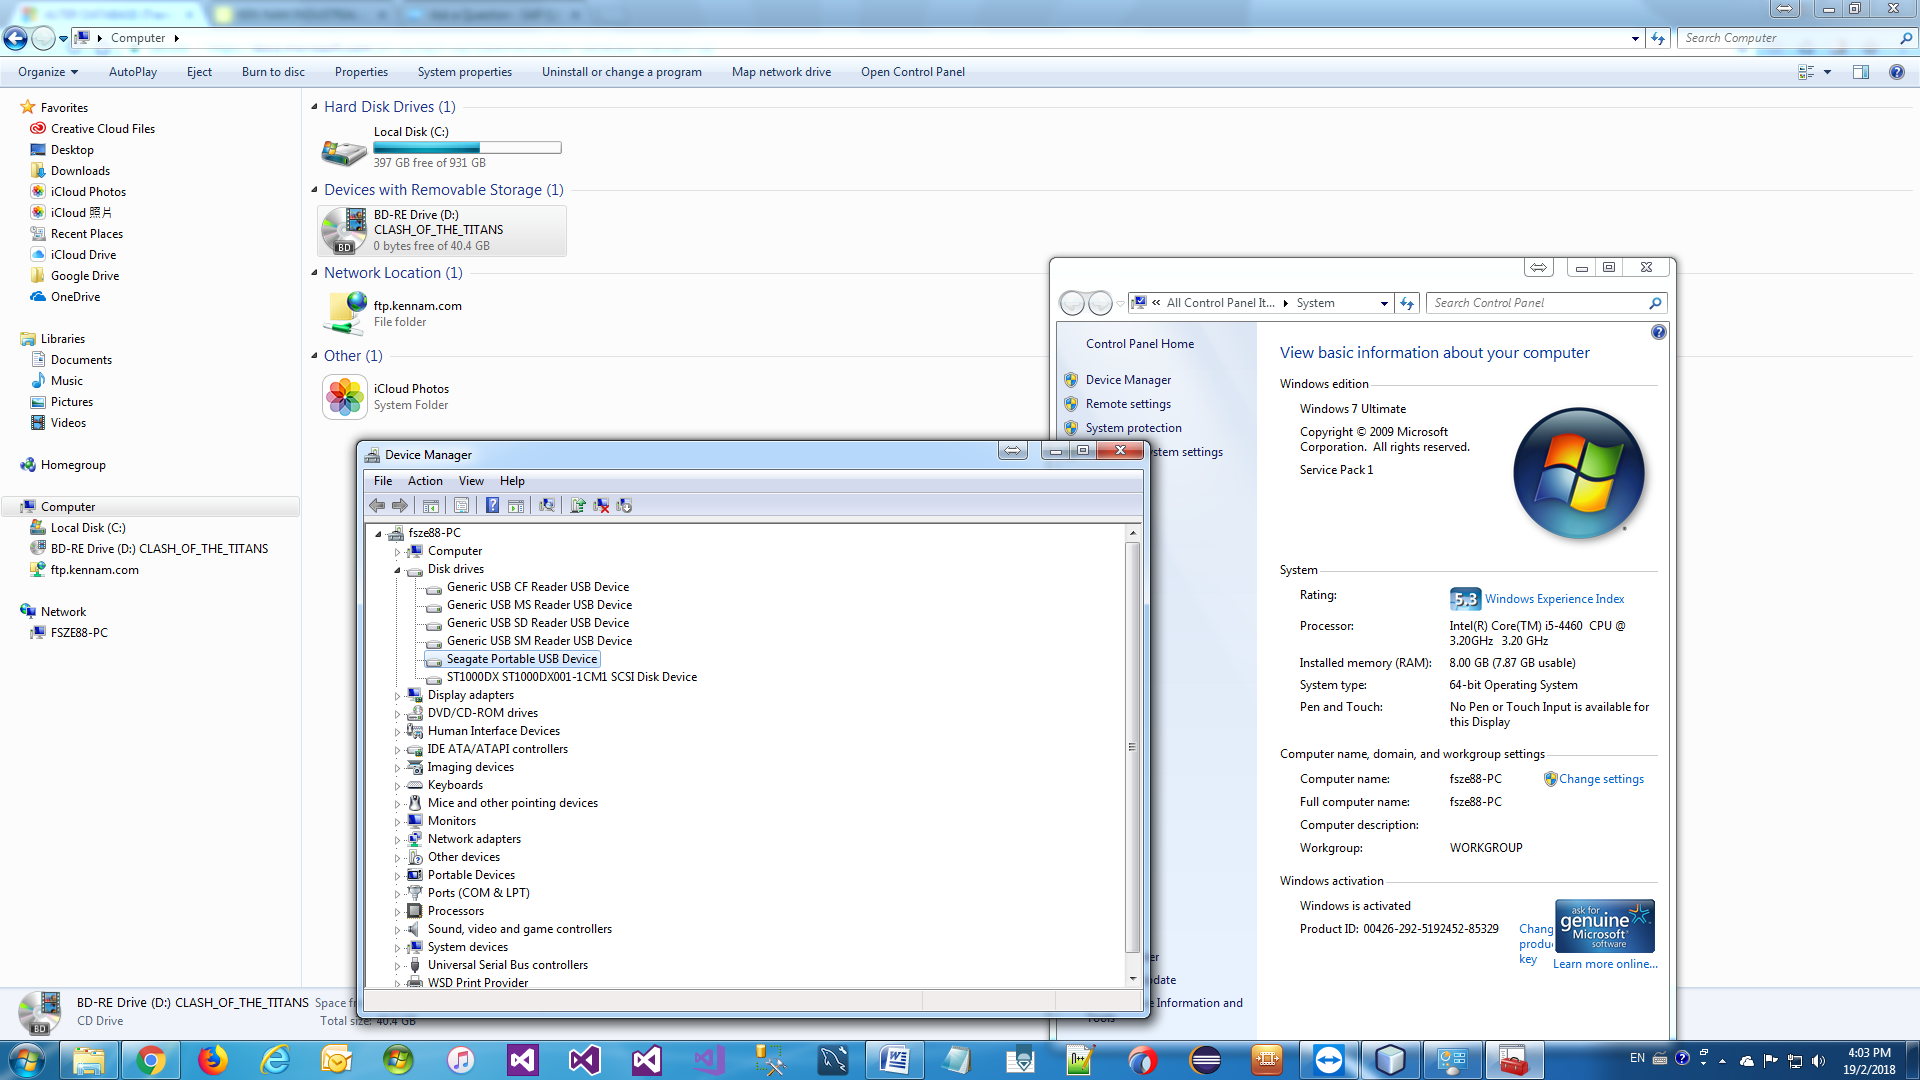 The Device Manager in Windows 7 and 8. How do I log into Device Manager